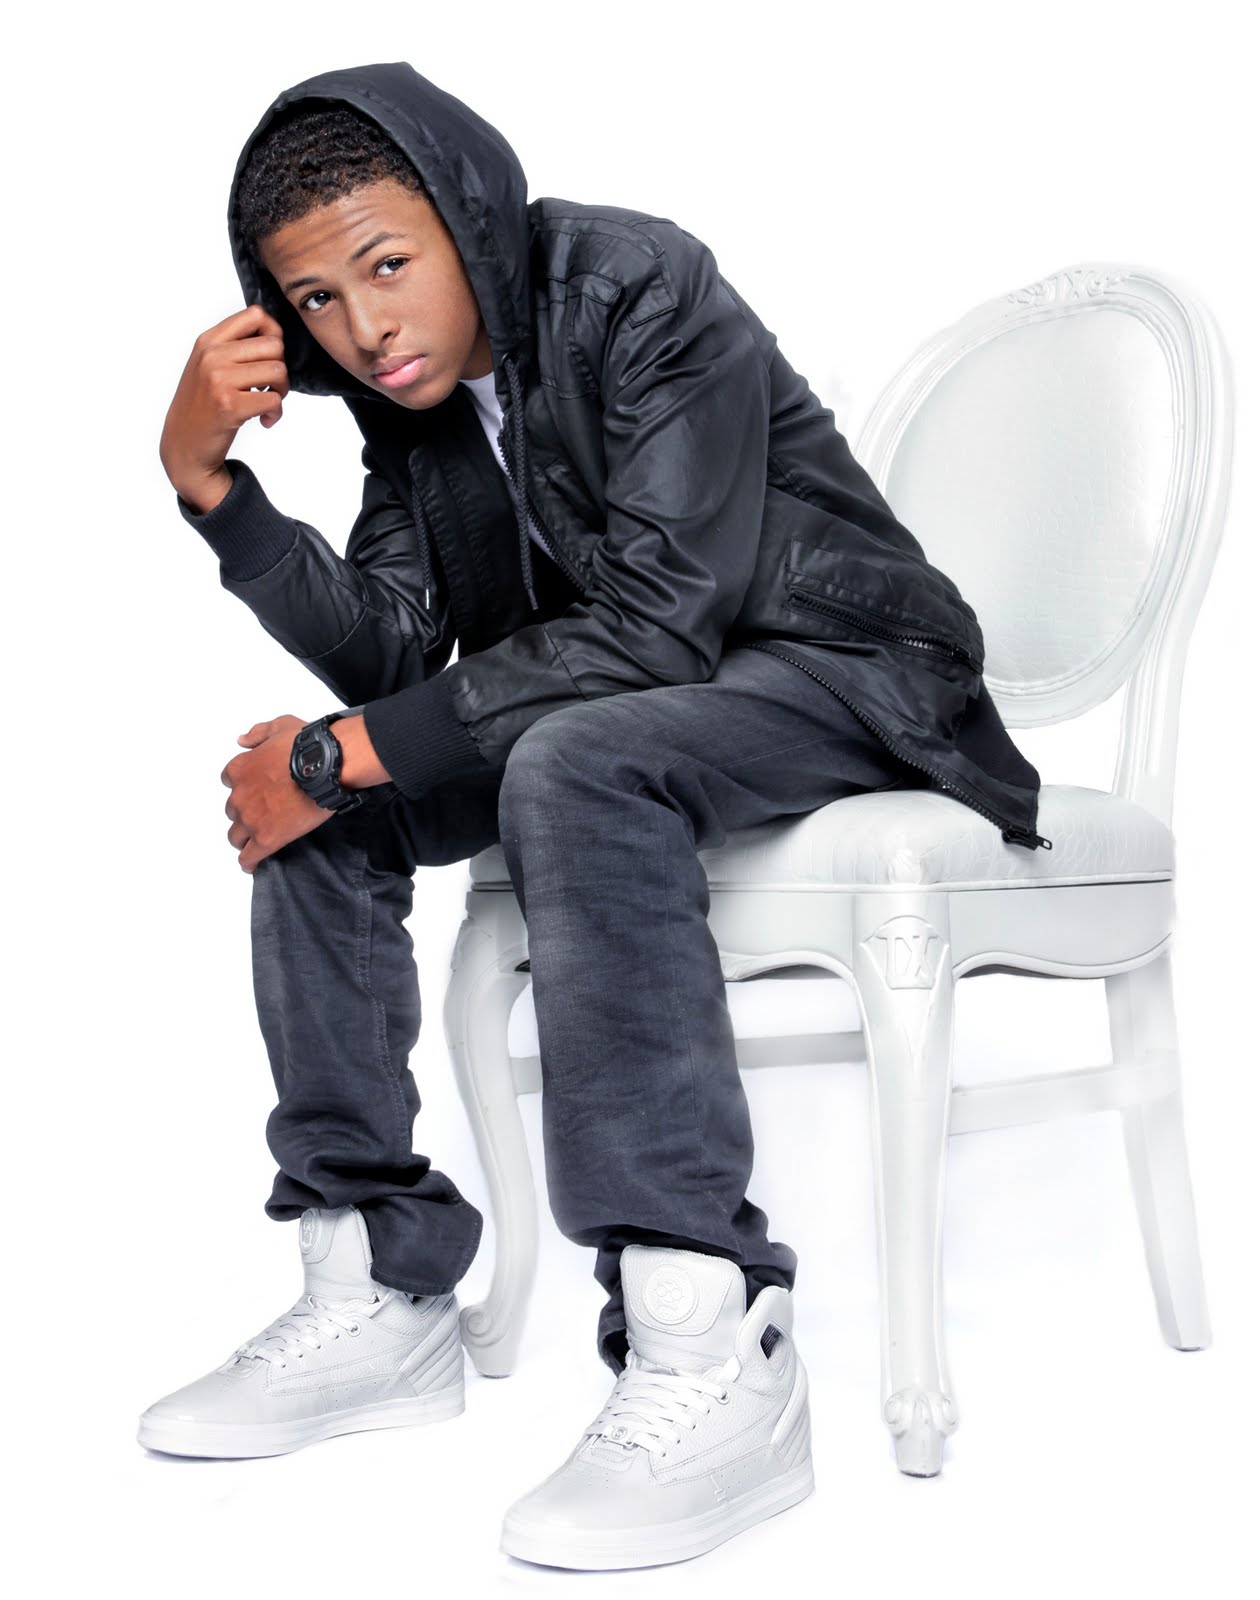 Diggy Simmons Releases Exceptional Debut Album